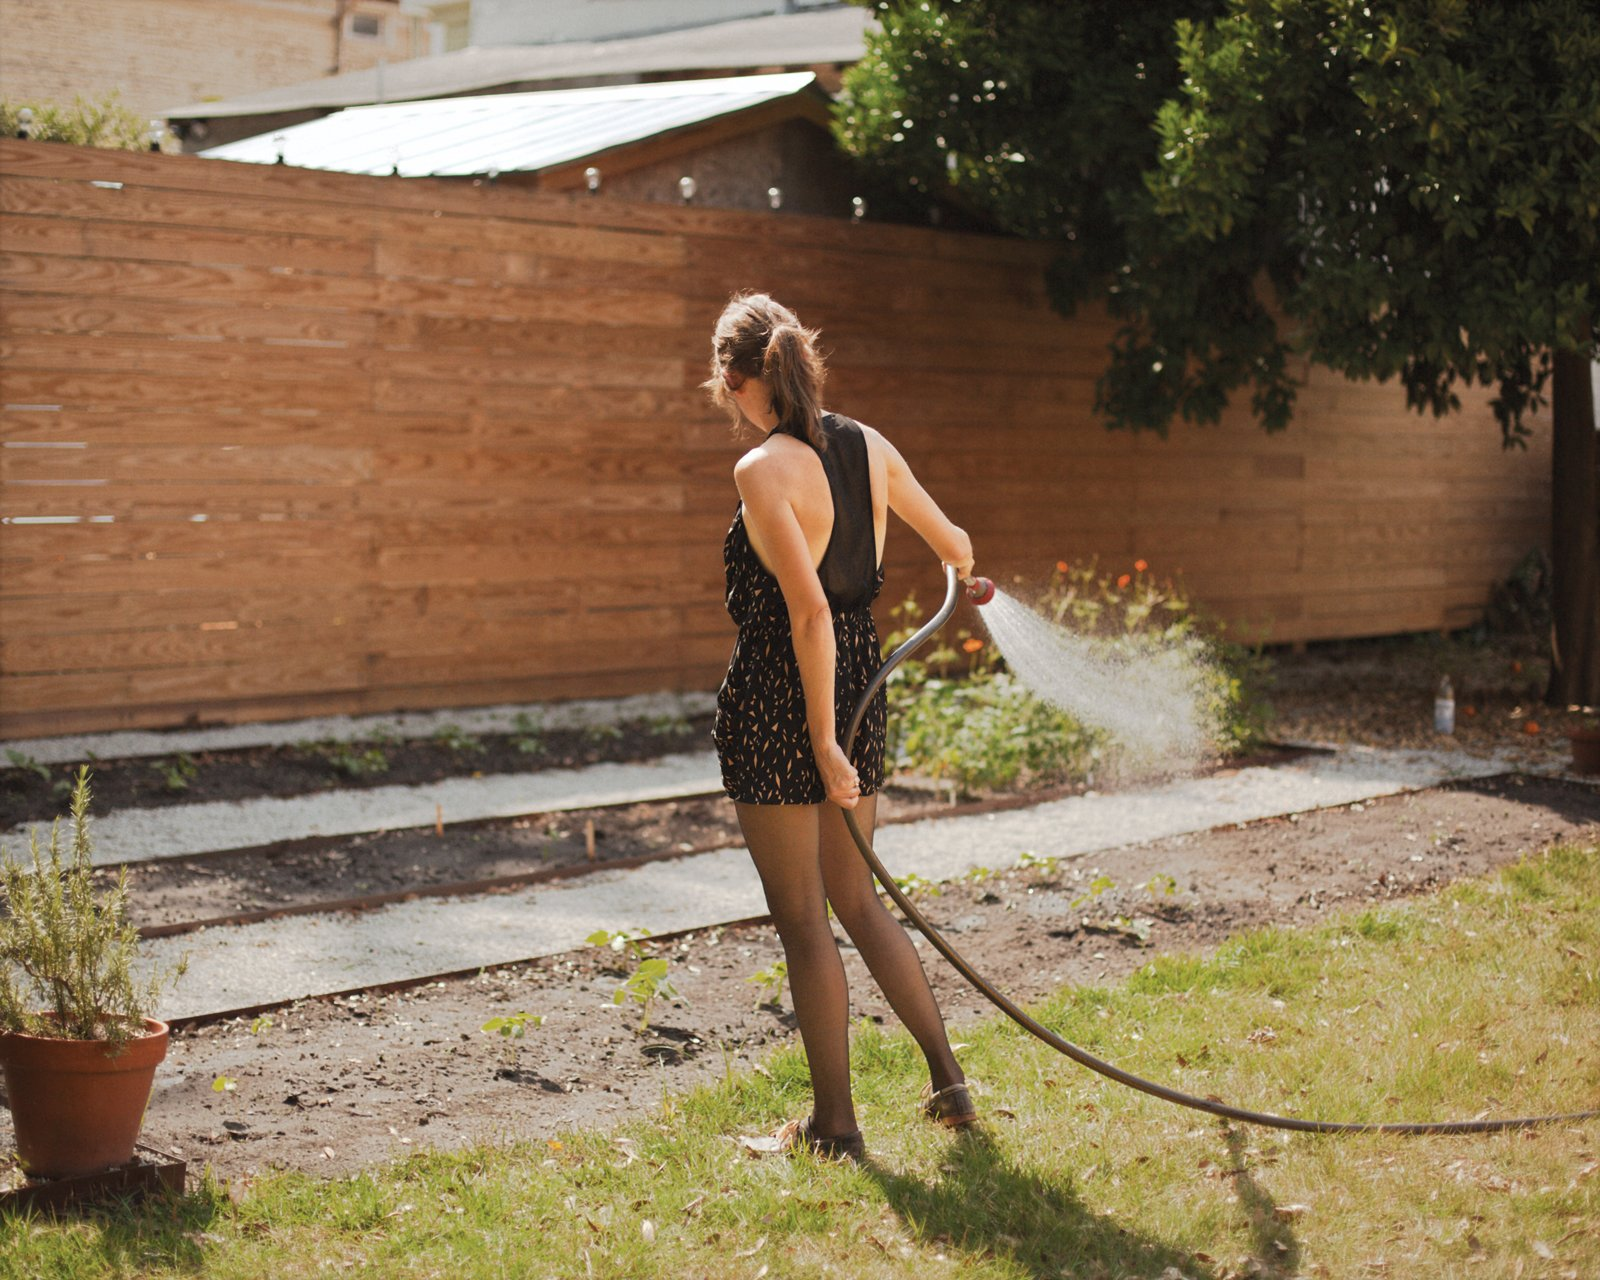 Helen Rice watering the garden outside of her Charleston residence.